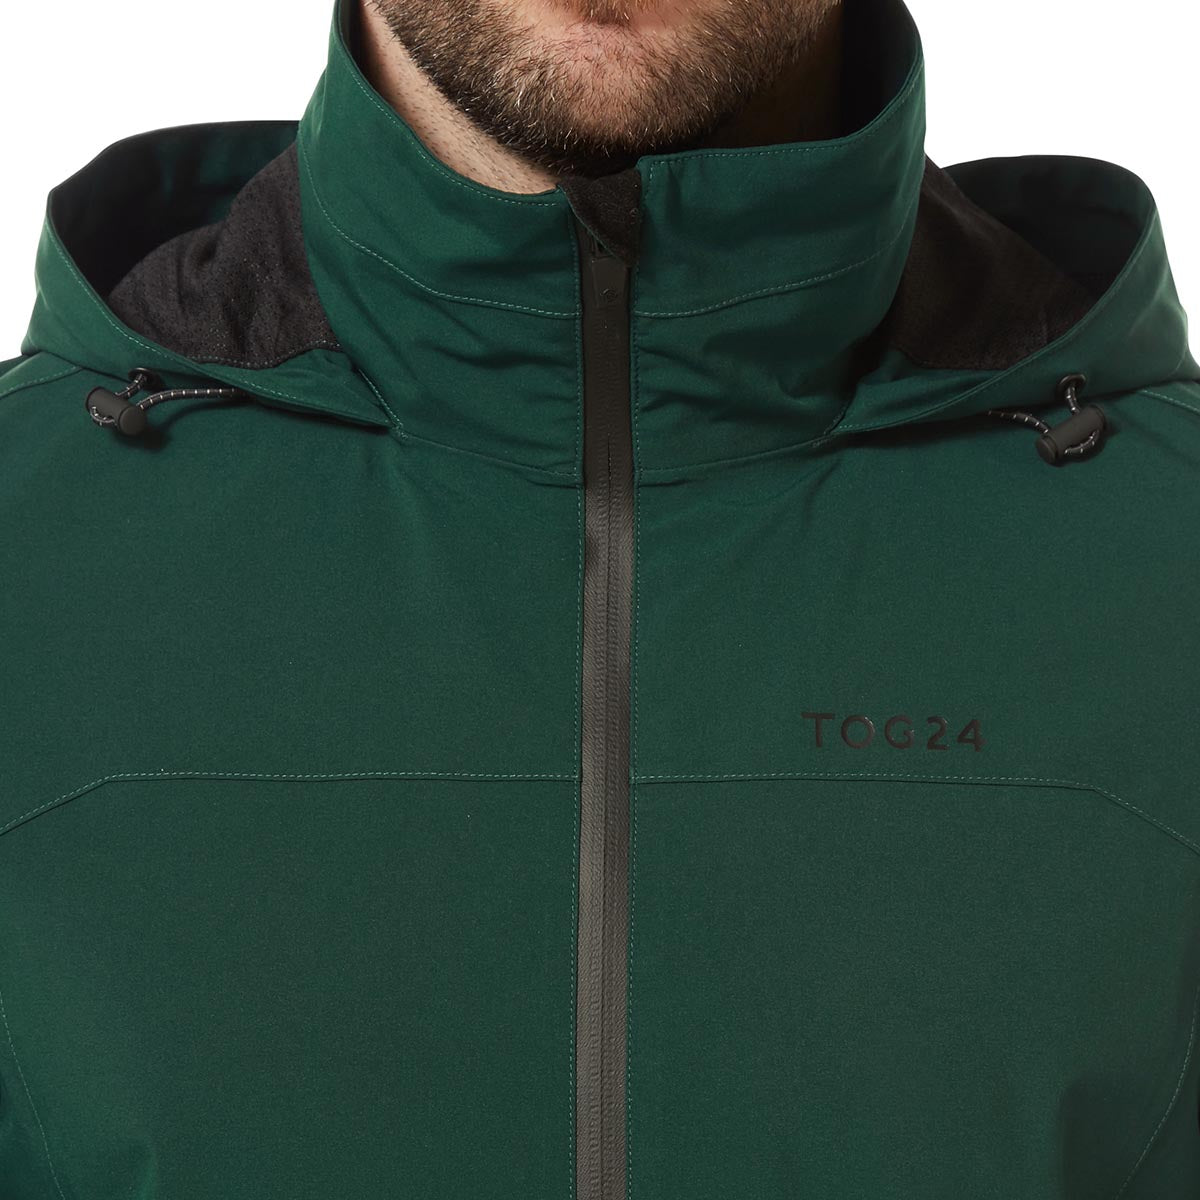 Sykes Mens Performance Waterproof Jacket - Forest Green image 4